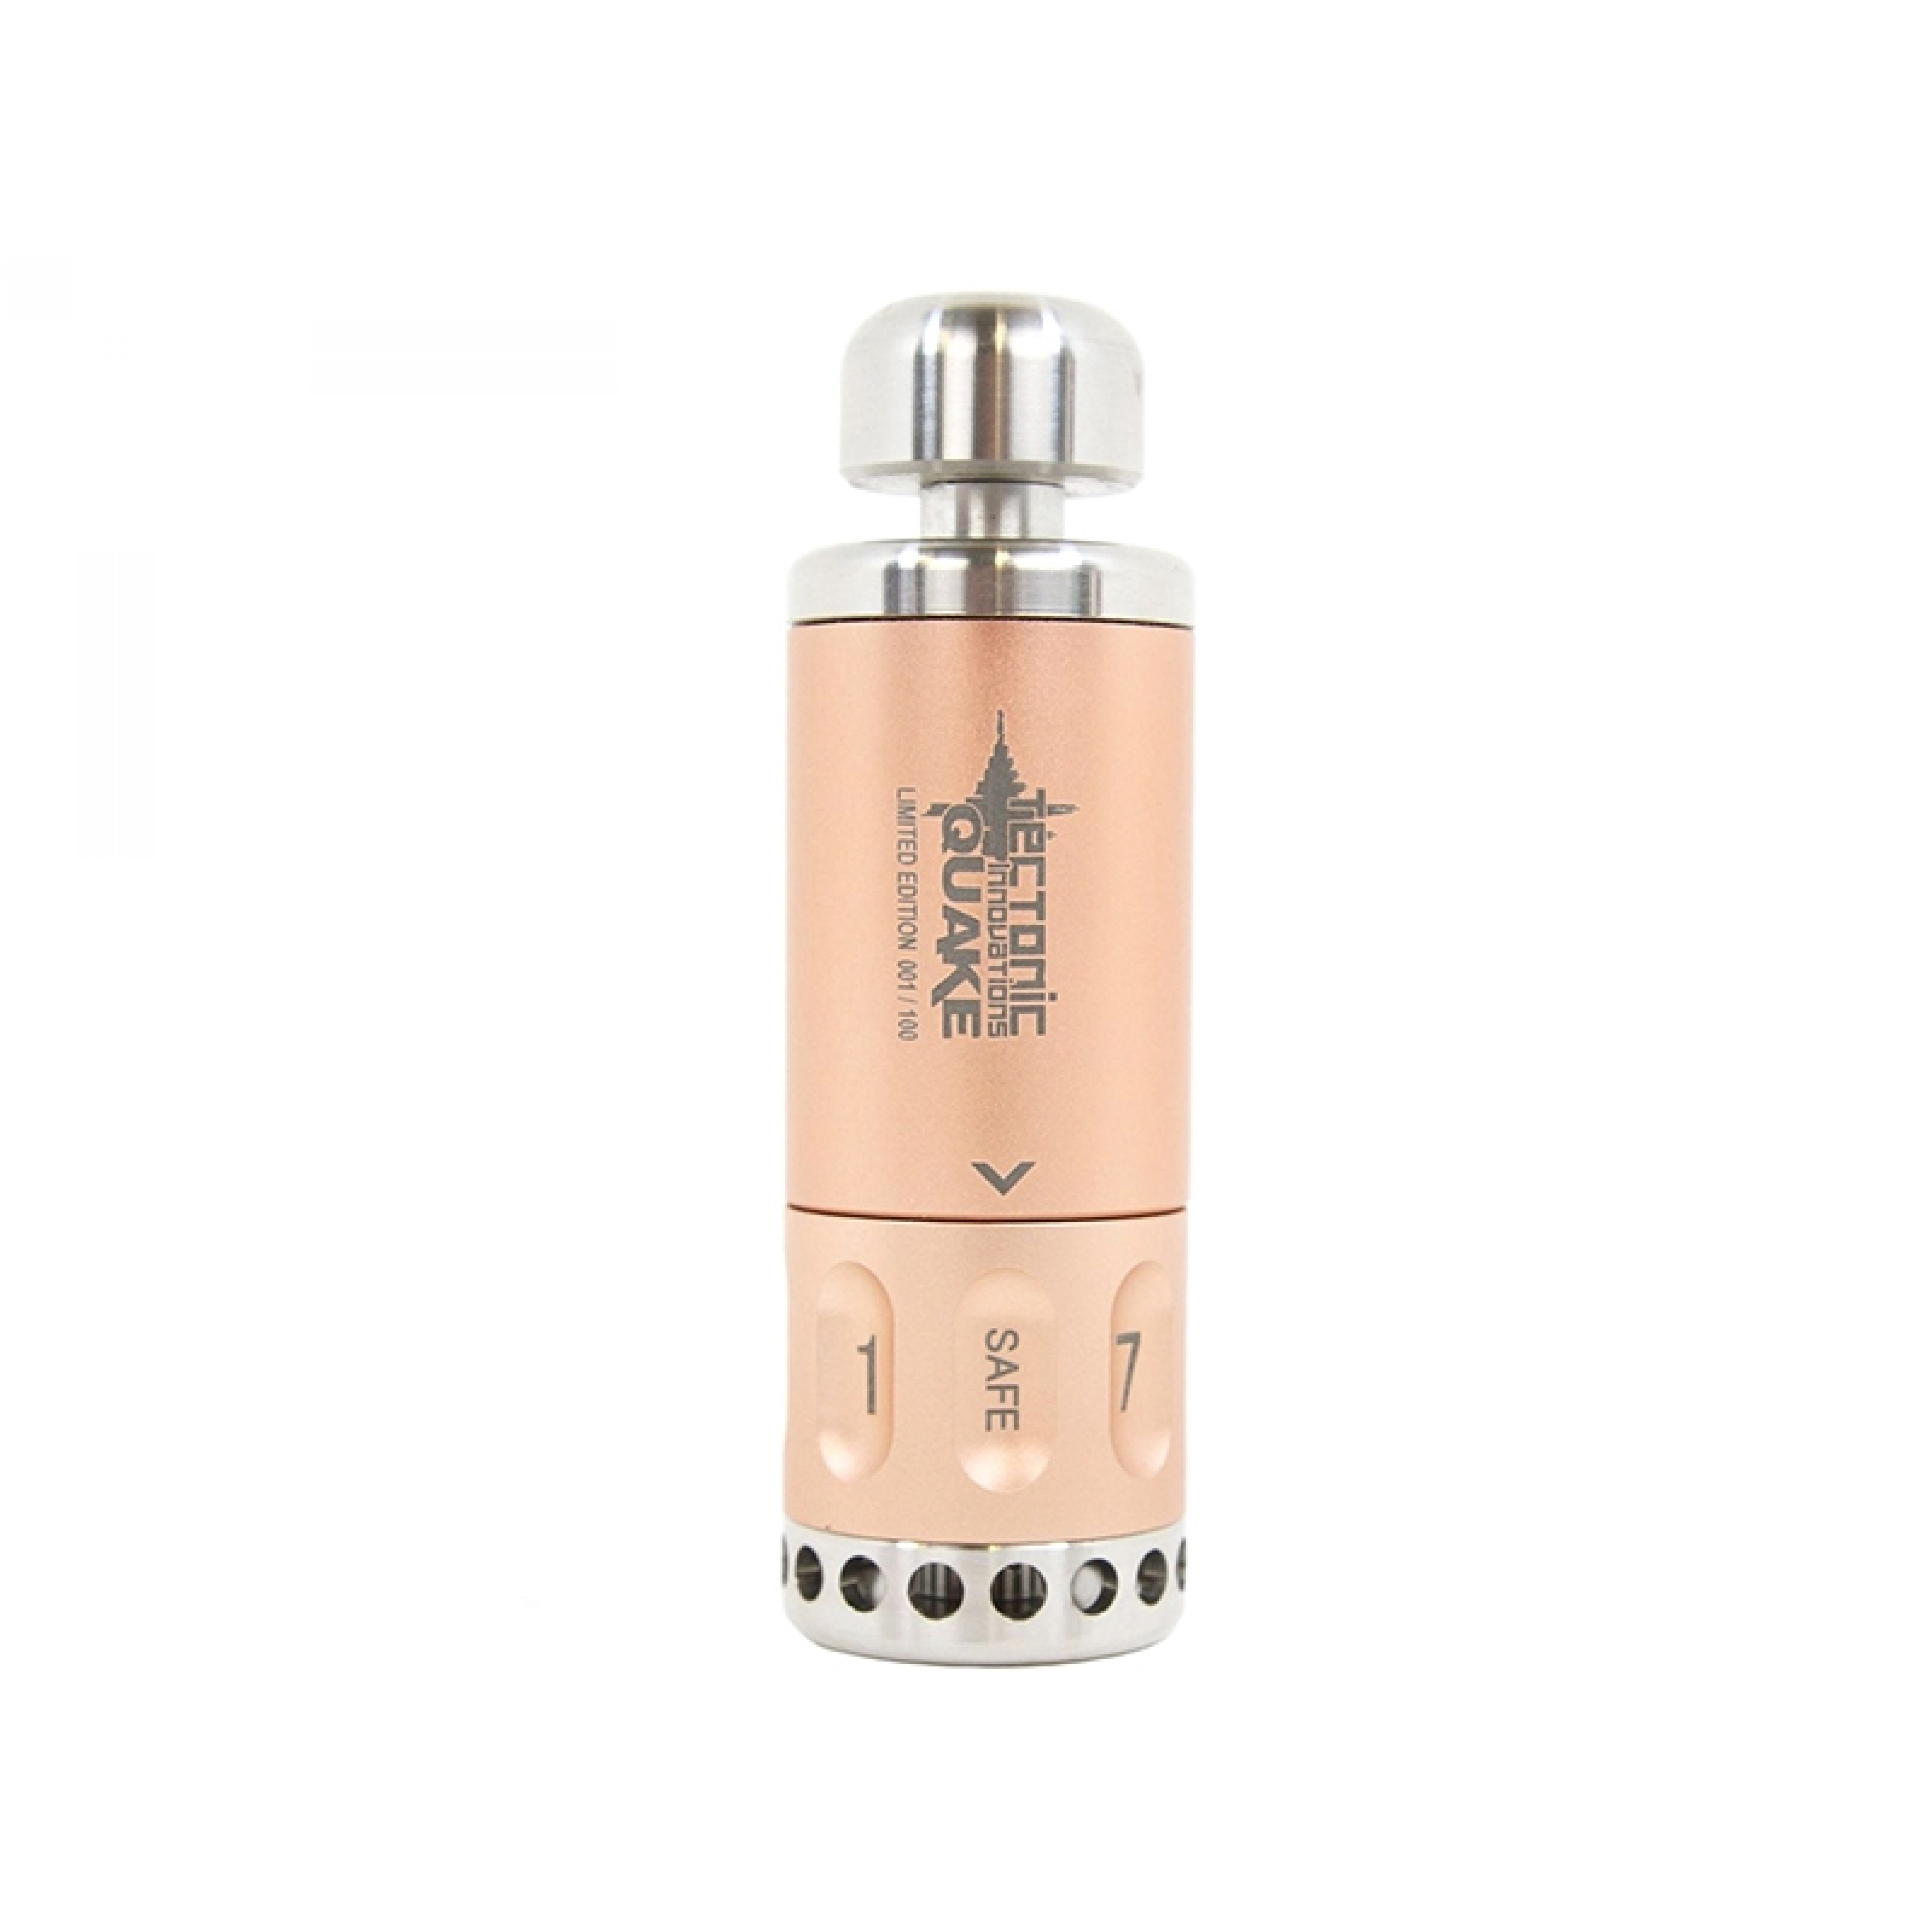 Tectonic Innovations Quake 8 Way Grenade - Limited Edition - Rose Gold